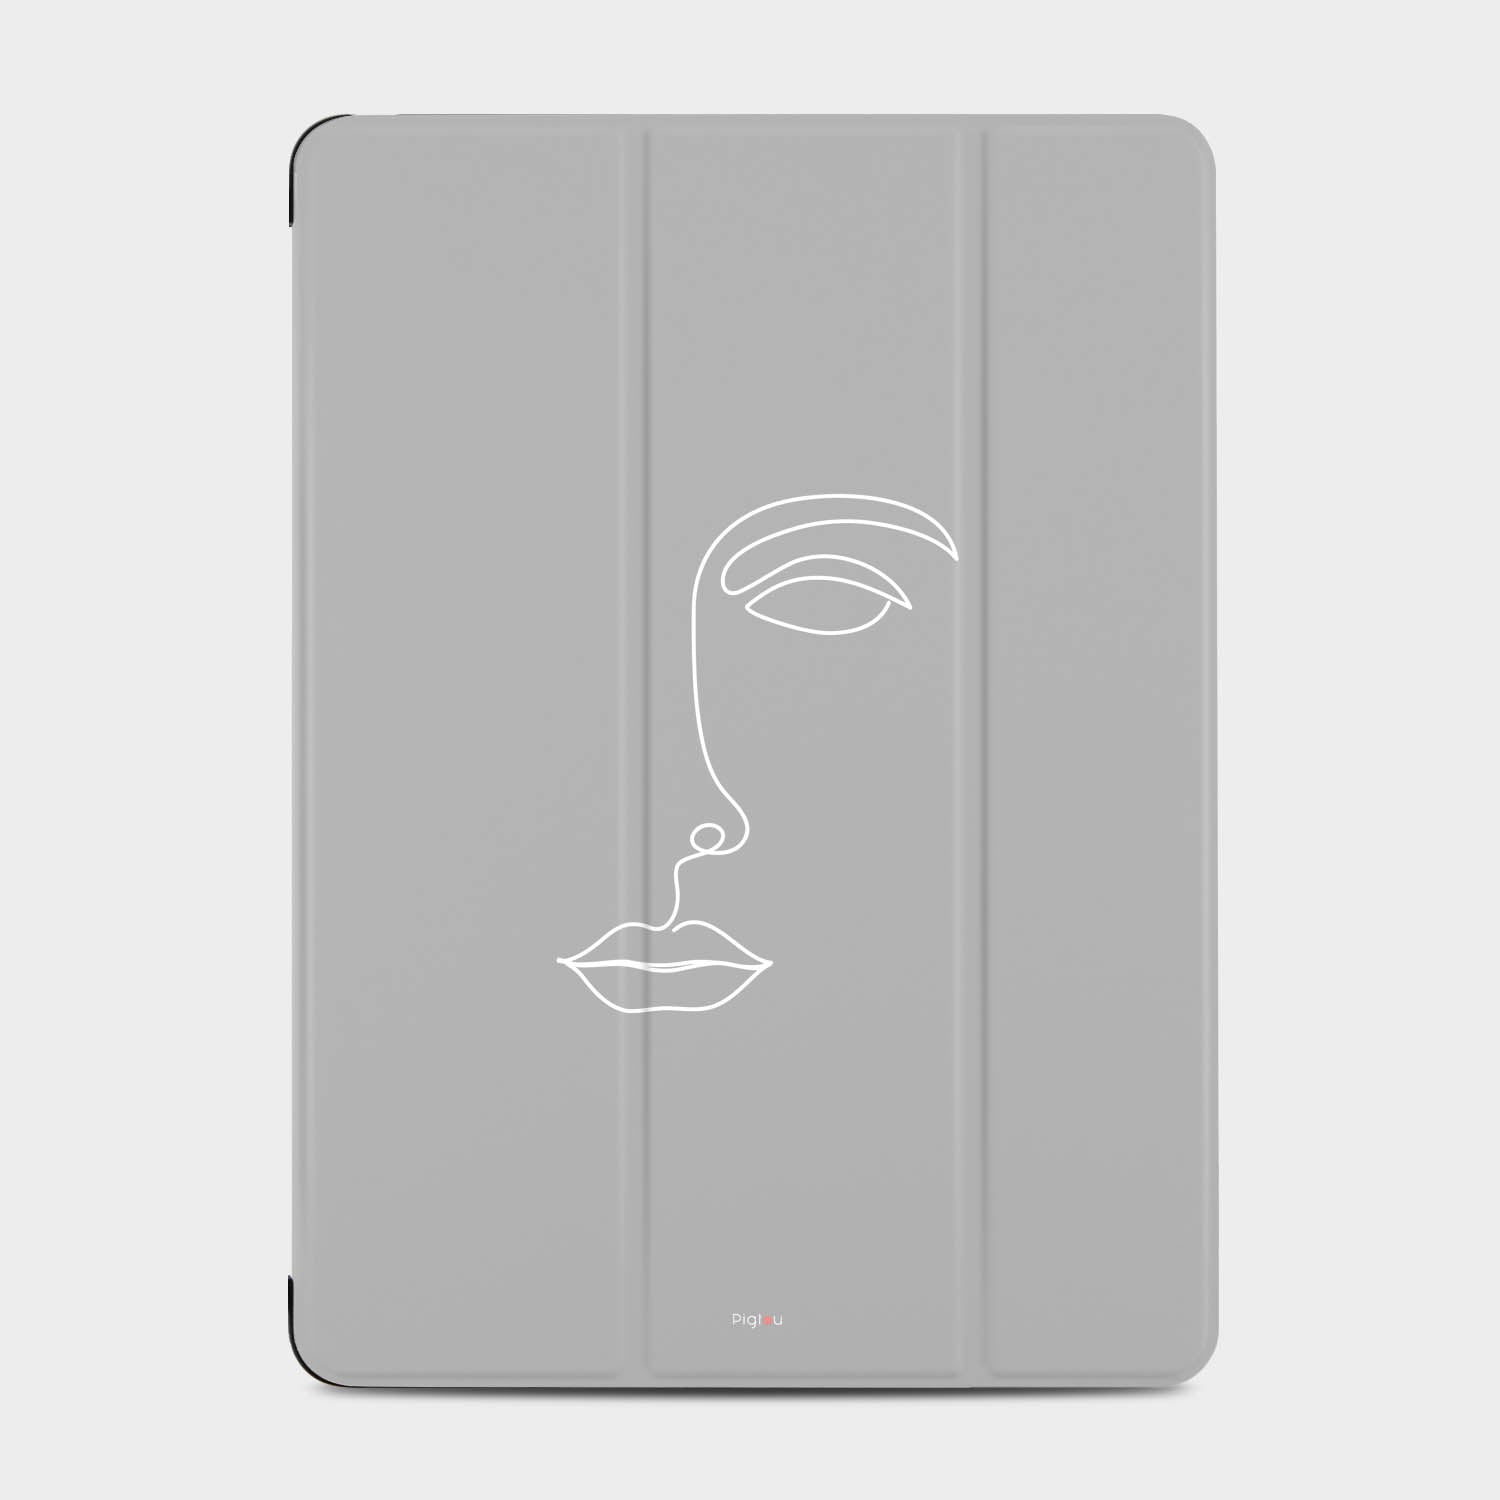 SILHOUETTE FACE iPad 2 cases | Pigtou